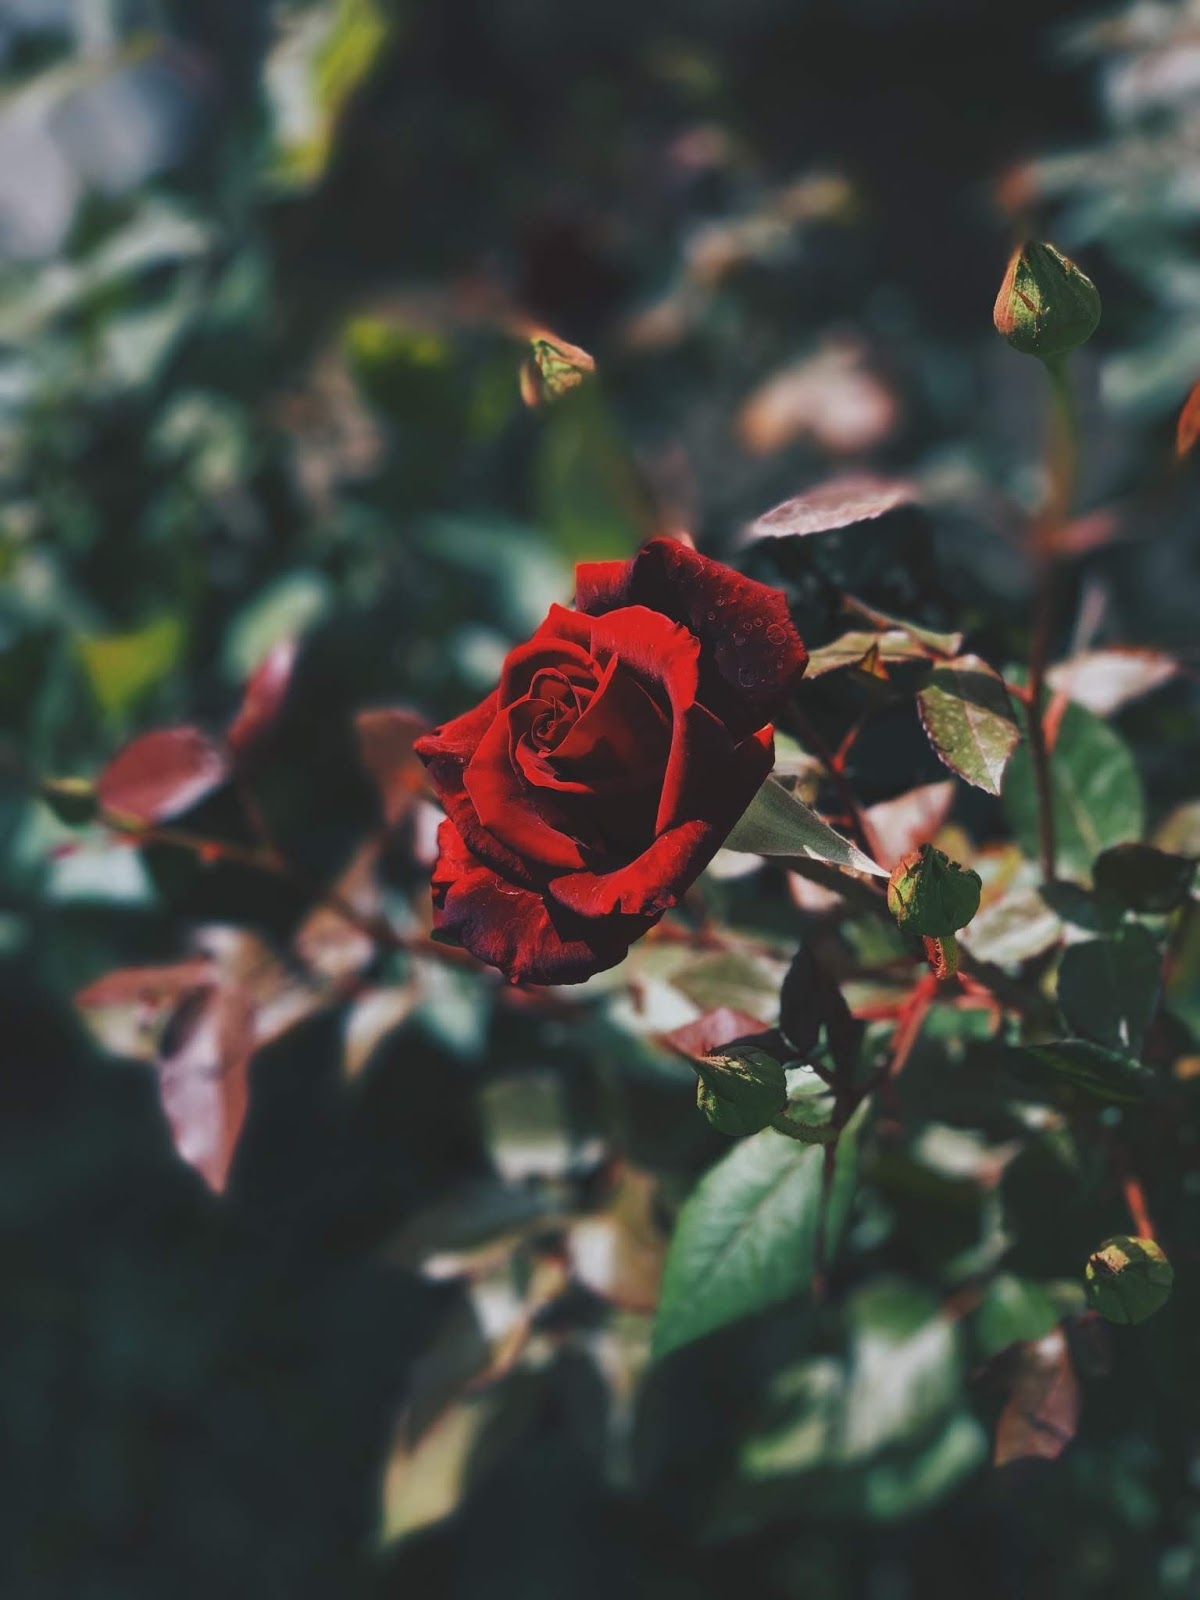 red rose plant, rose images